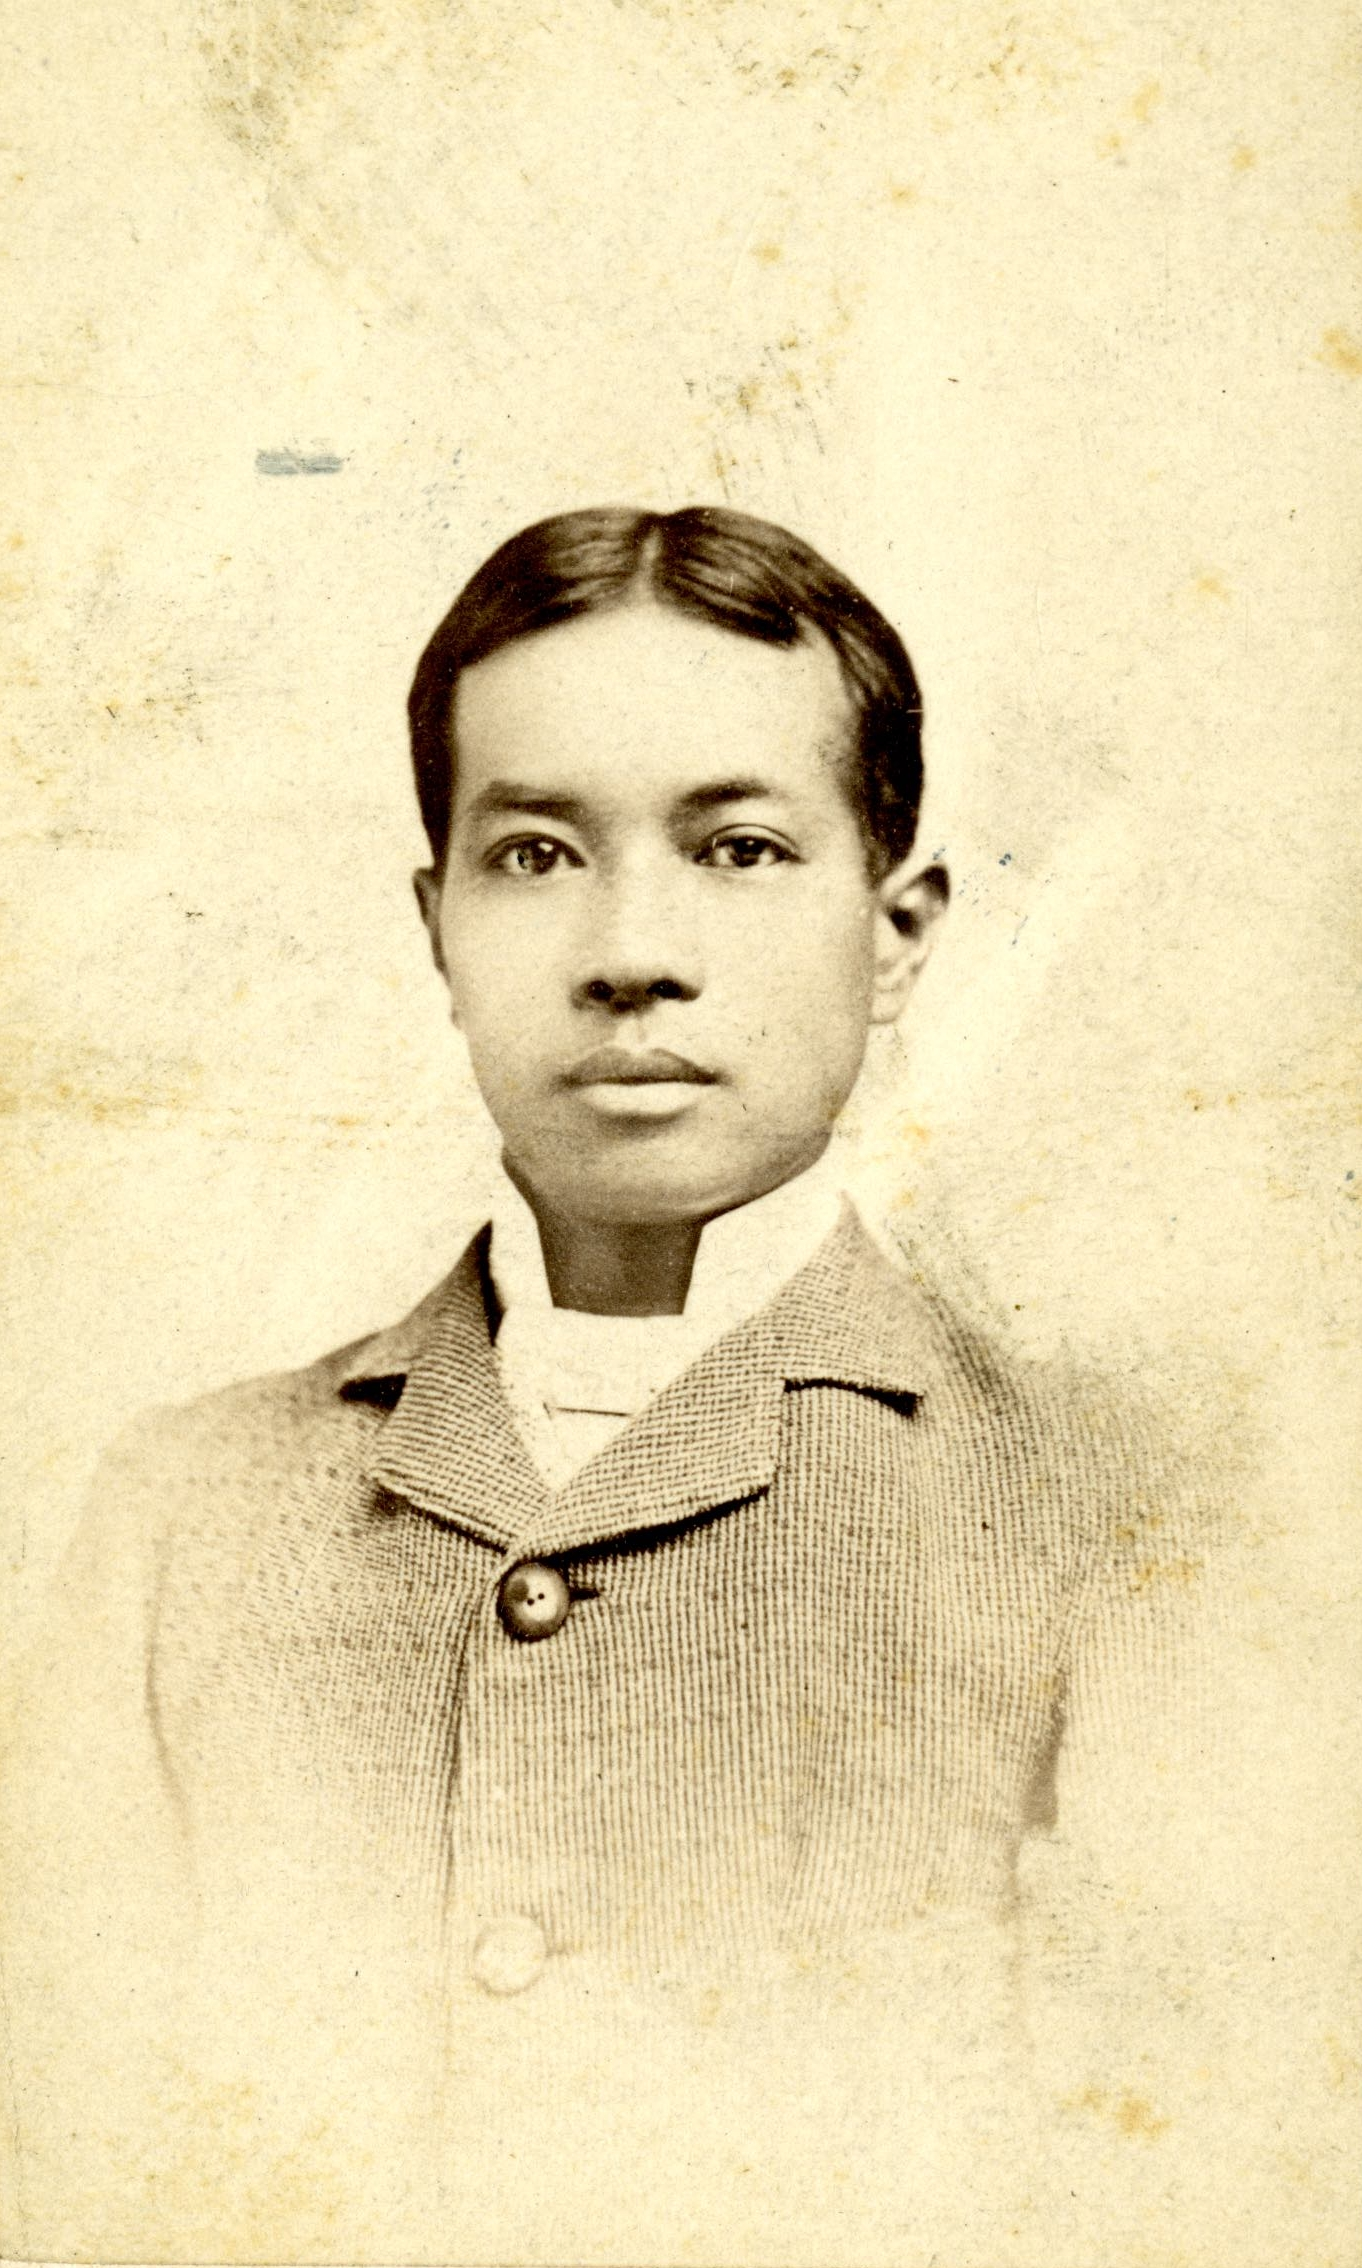 Tyng Se Chung, ca. 1872.2-2-40. Thomas E. LaFargue Papers, 1873-1946, courtesy Manuscripts, Archives, and Special Collections (MASC), Washington State University Libraries.